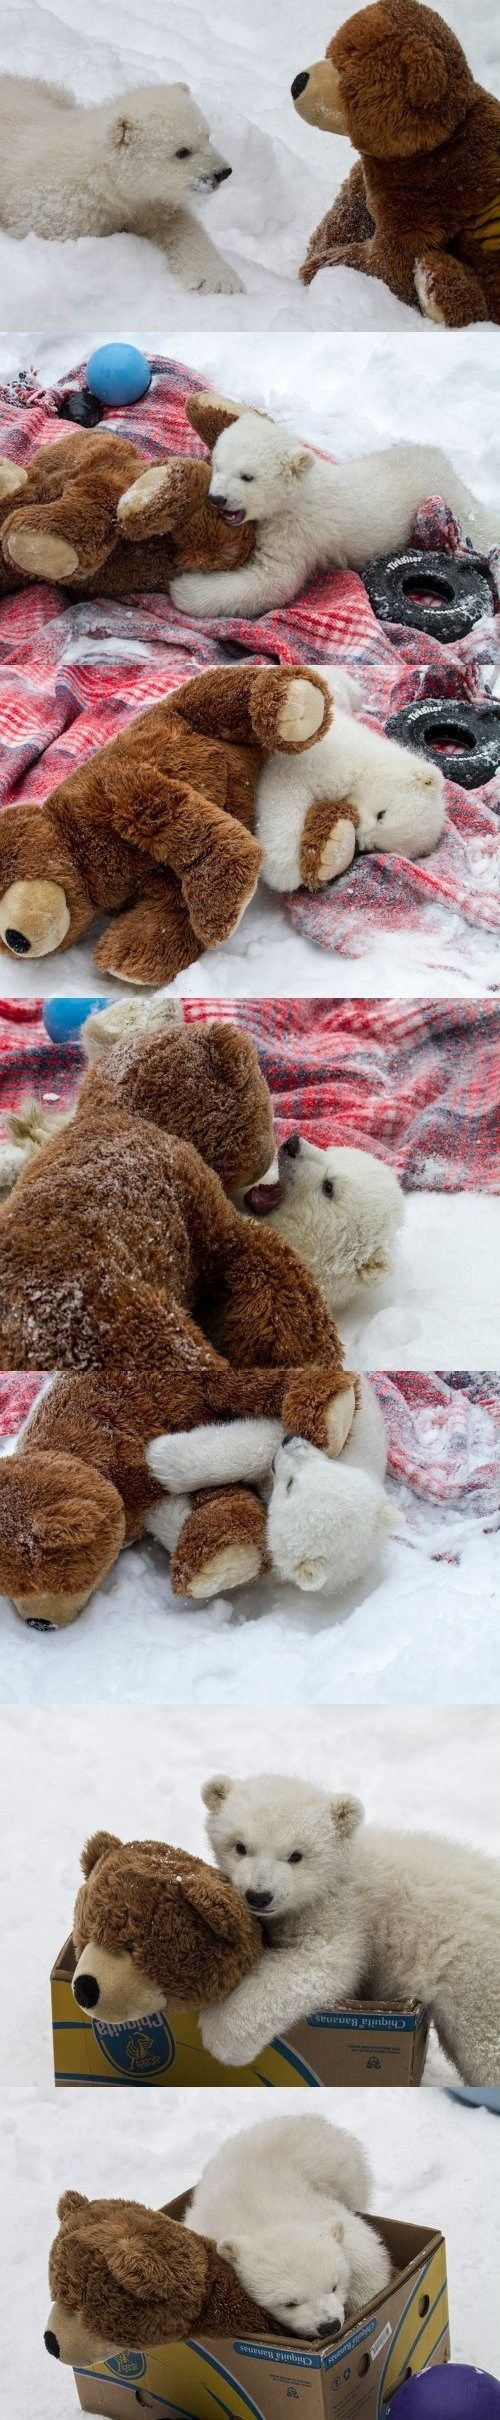 baby polar bear meets a friend.